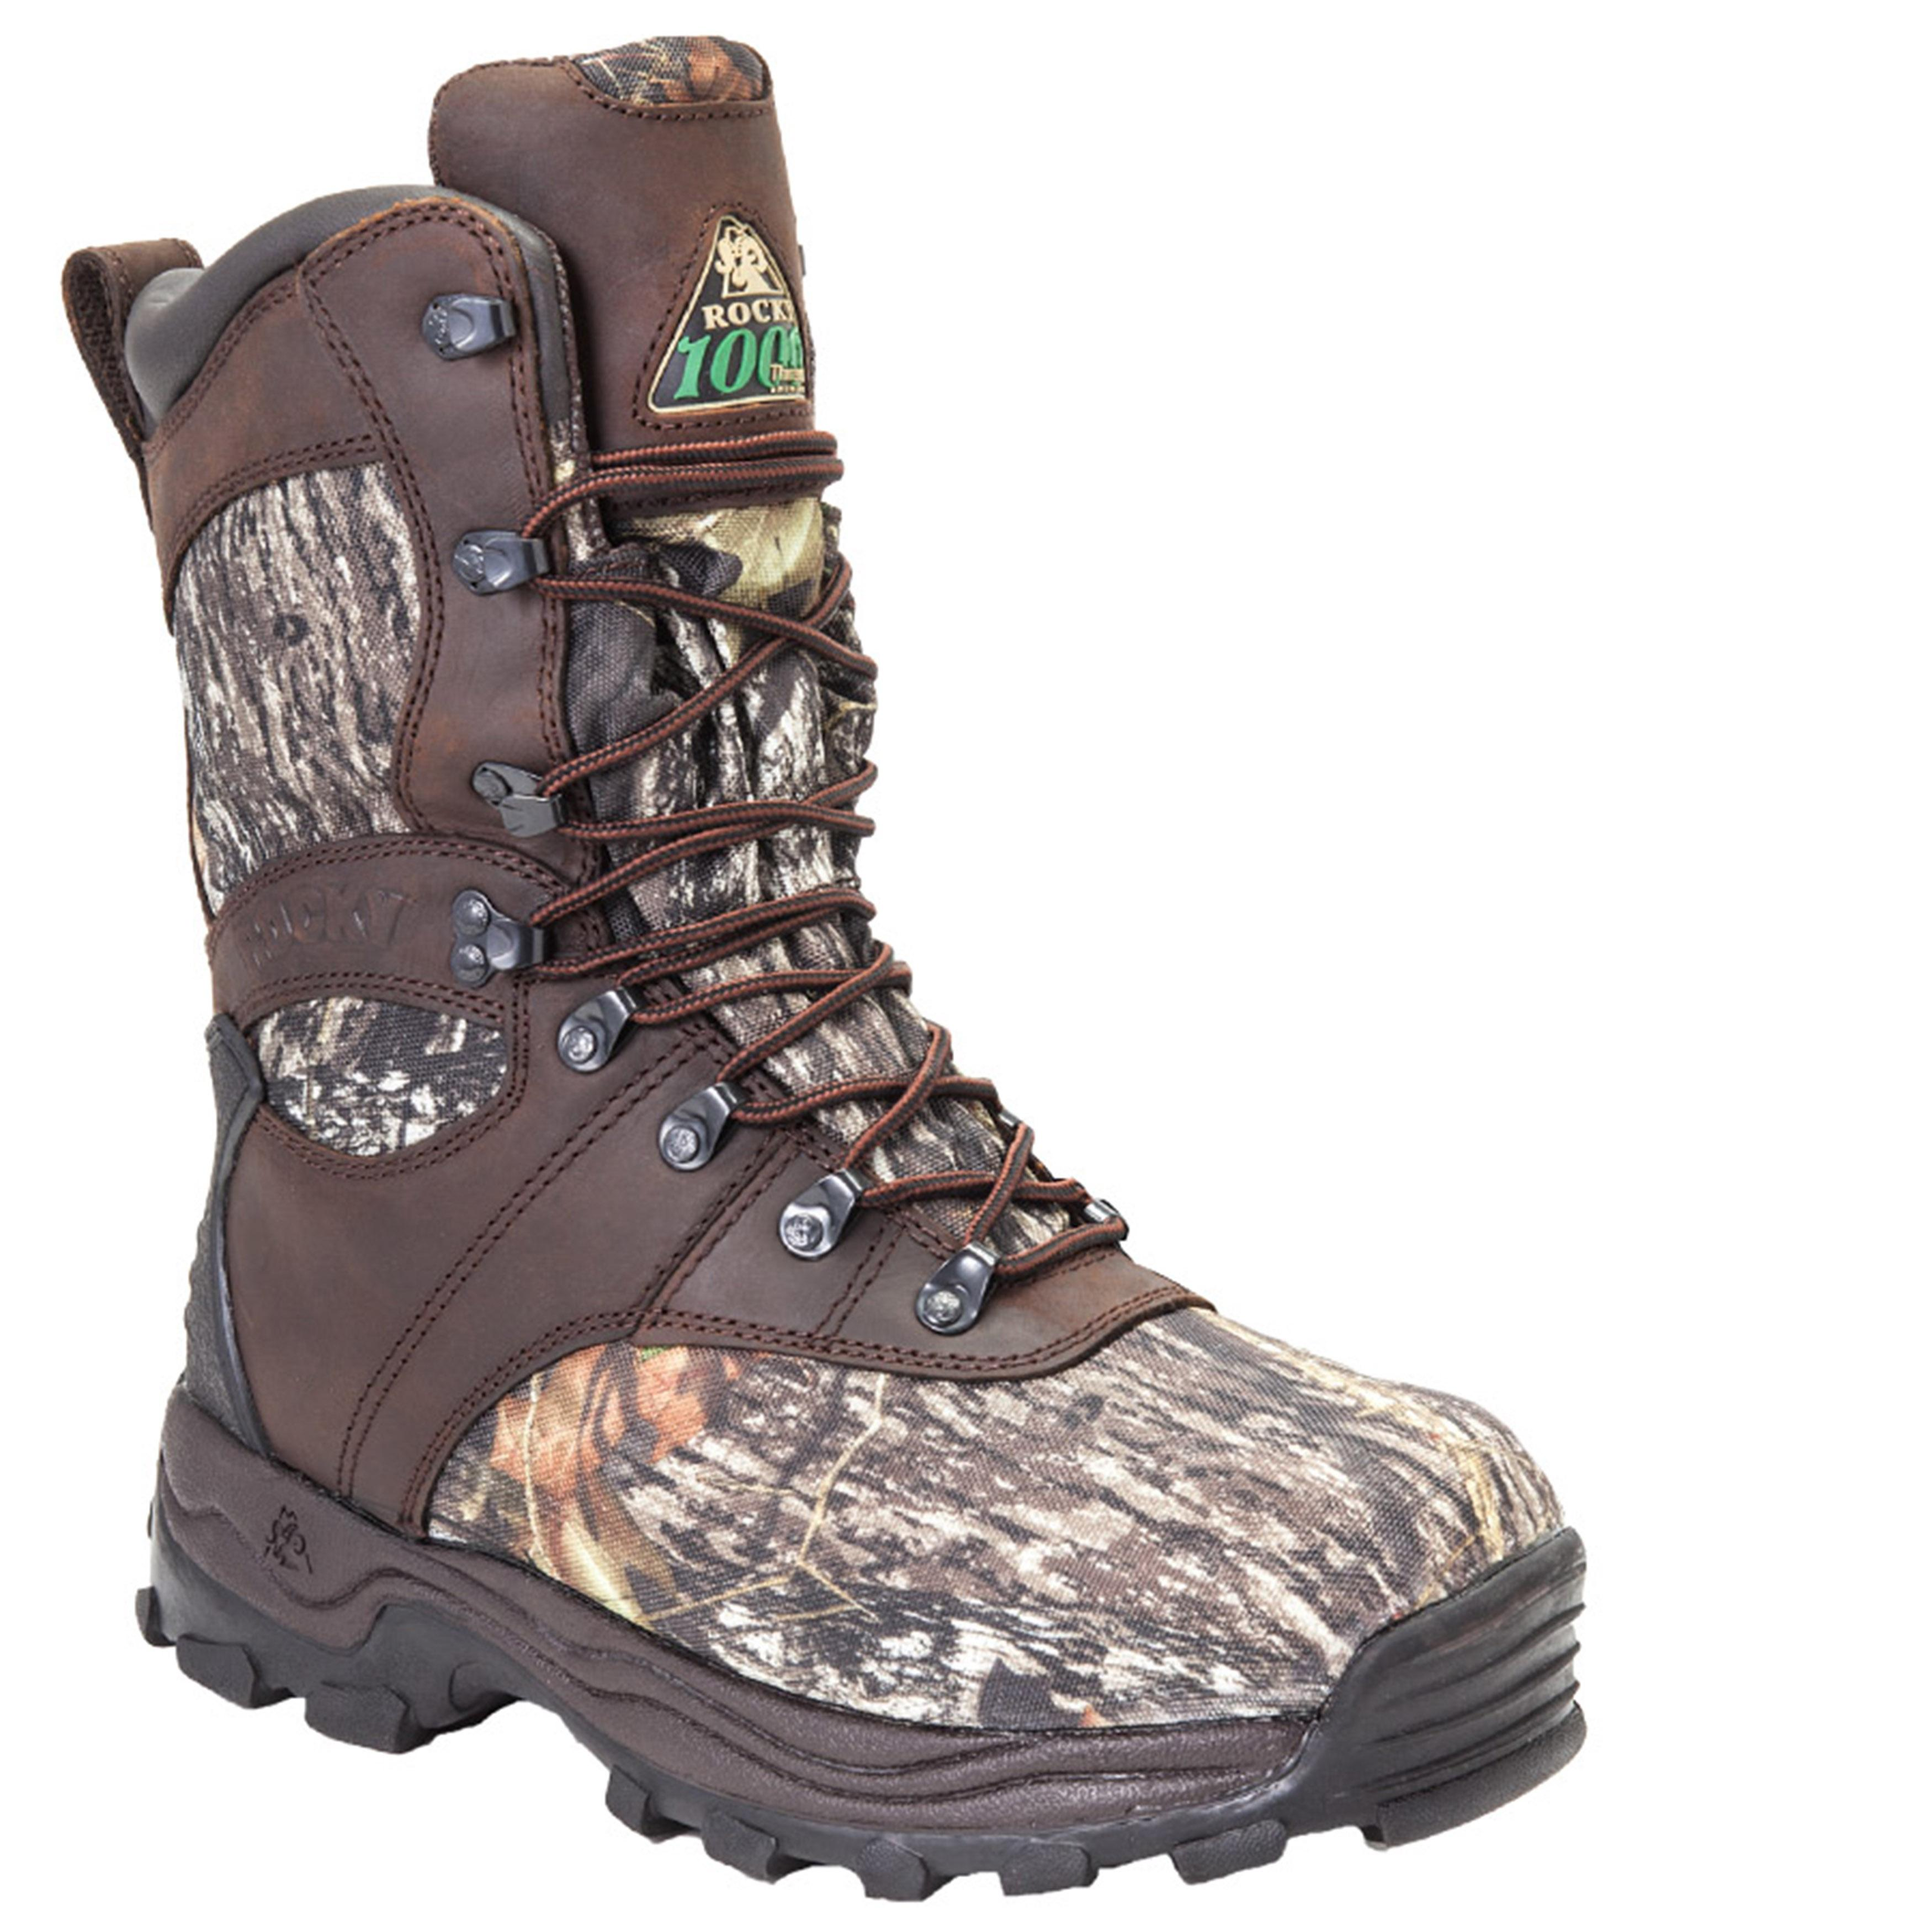 better classic shoes lace up in Rocky Sport Utility Max 1000G Insulated Waterproof Boot | eBay